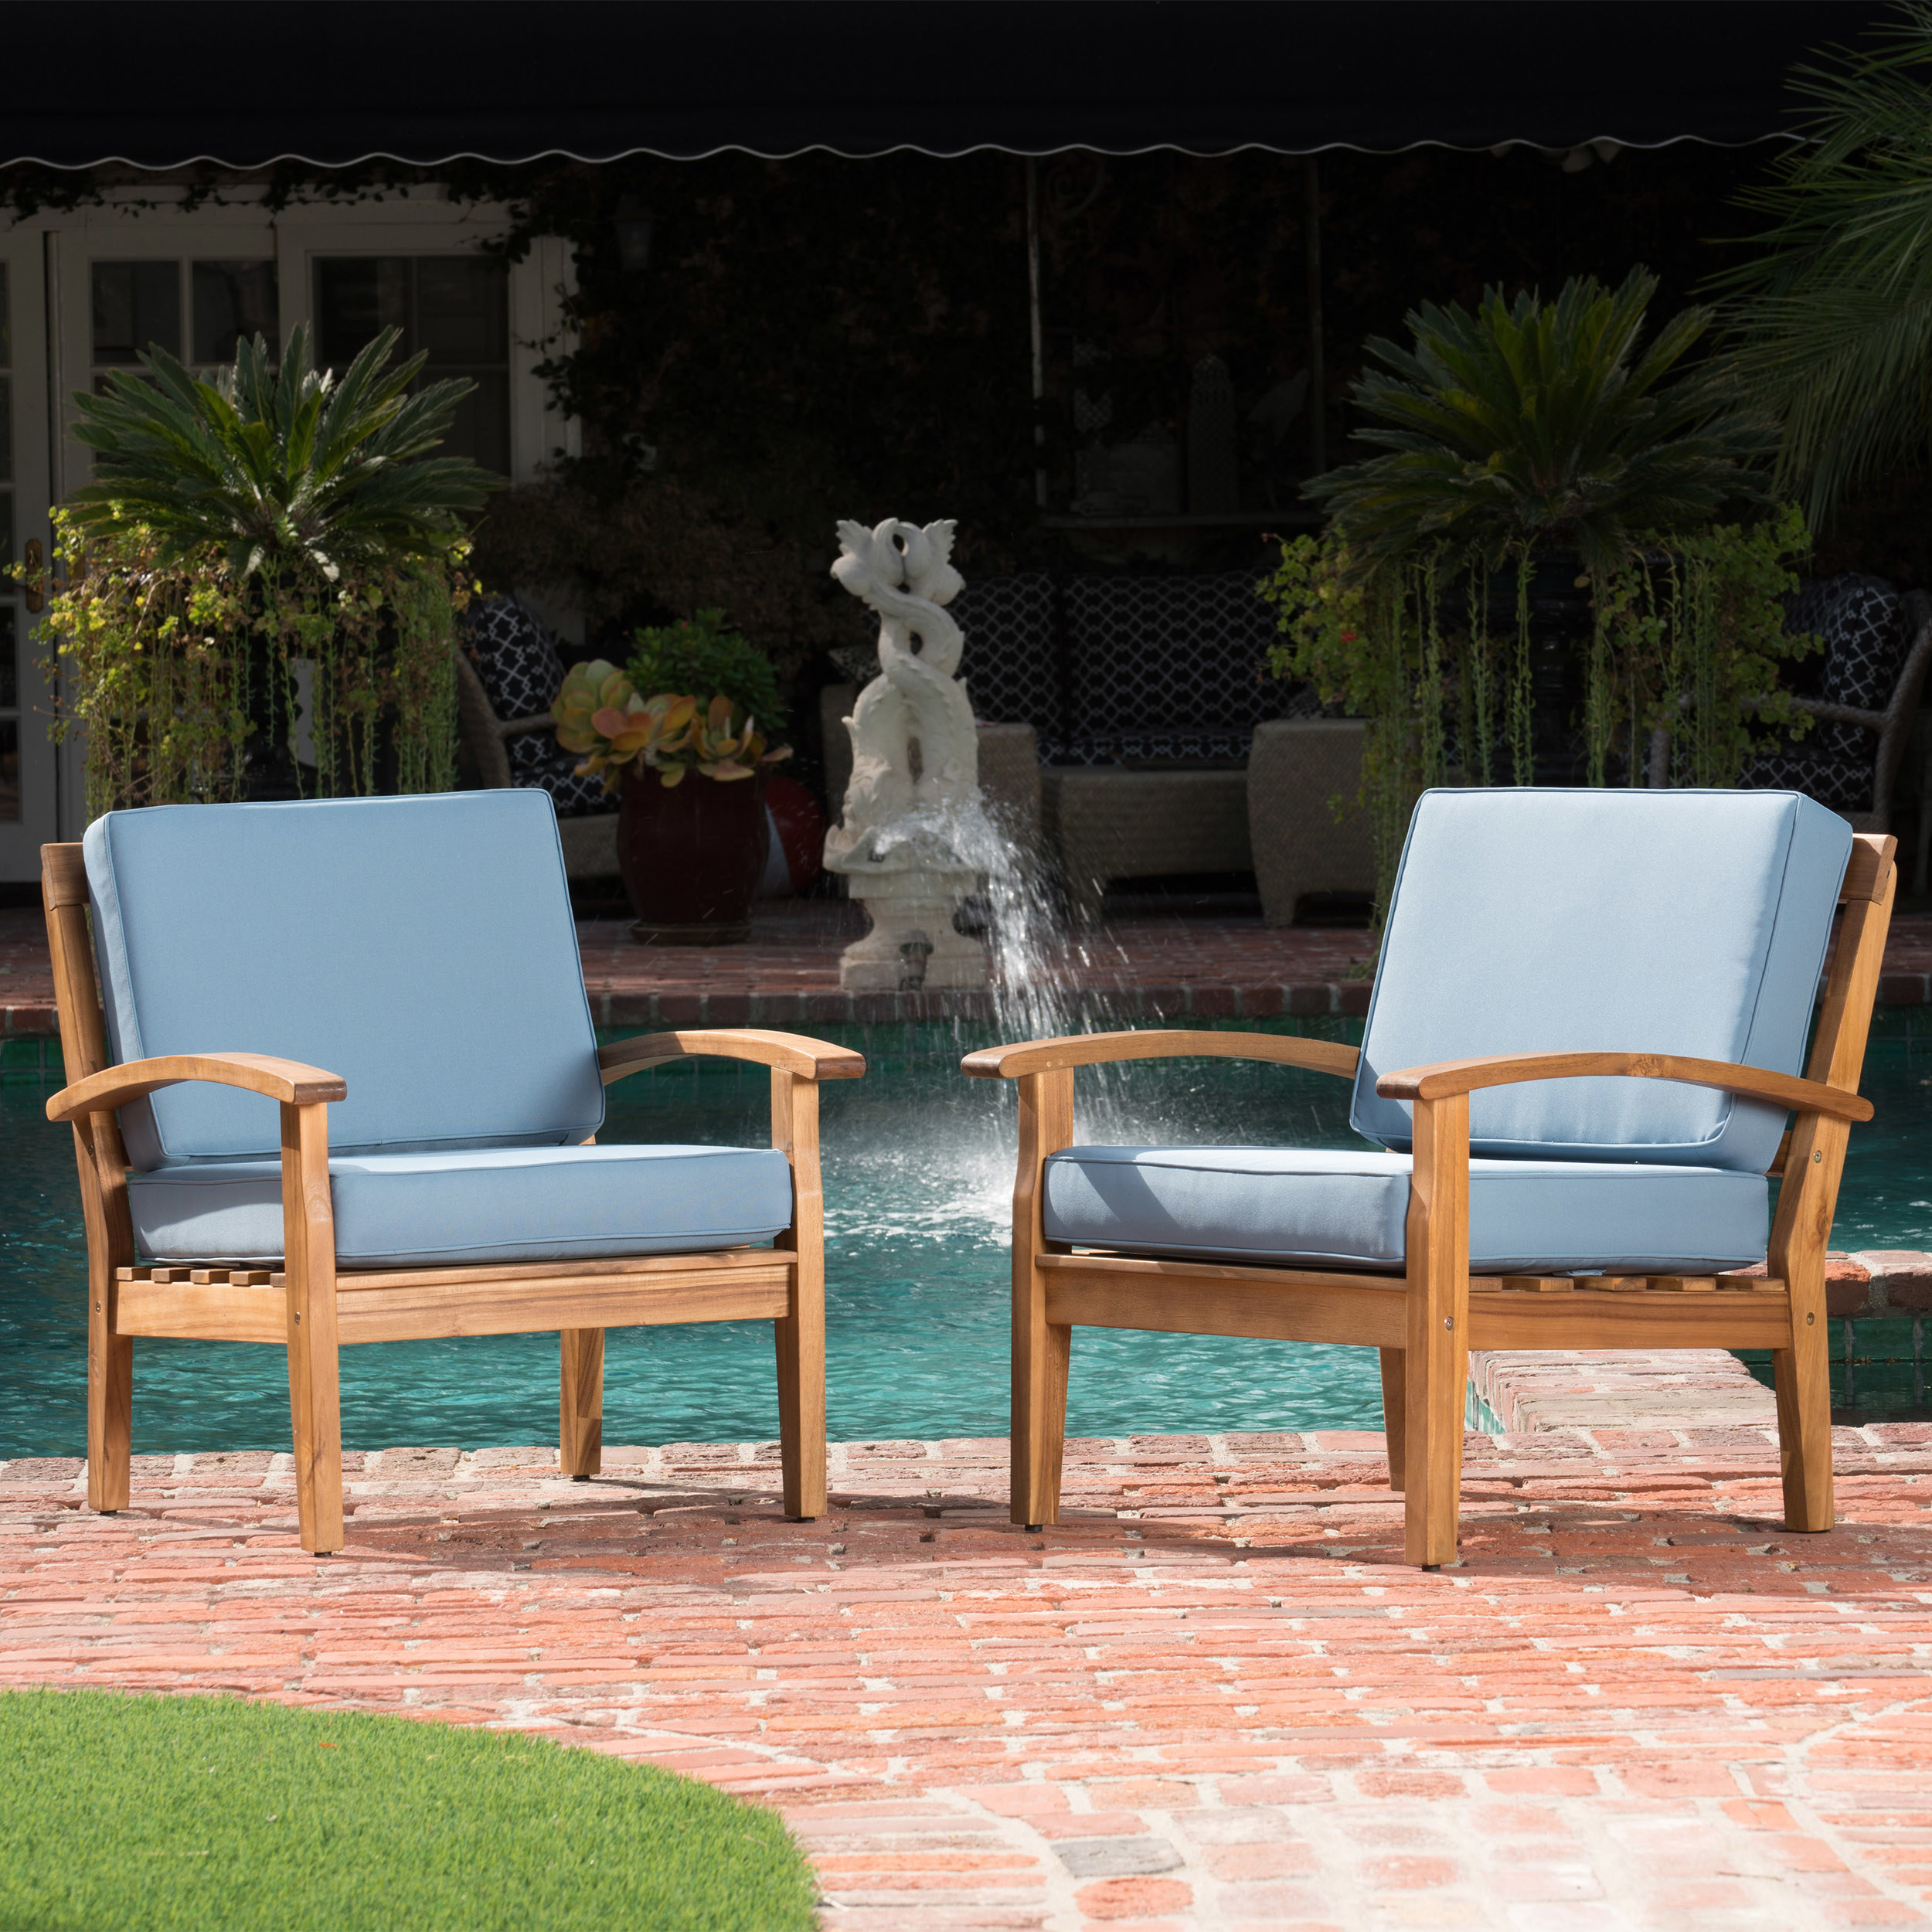 Two wood-framed outdoor chairs with light blue cushions